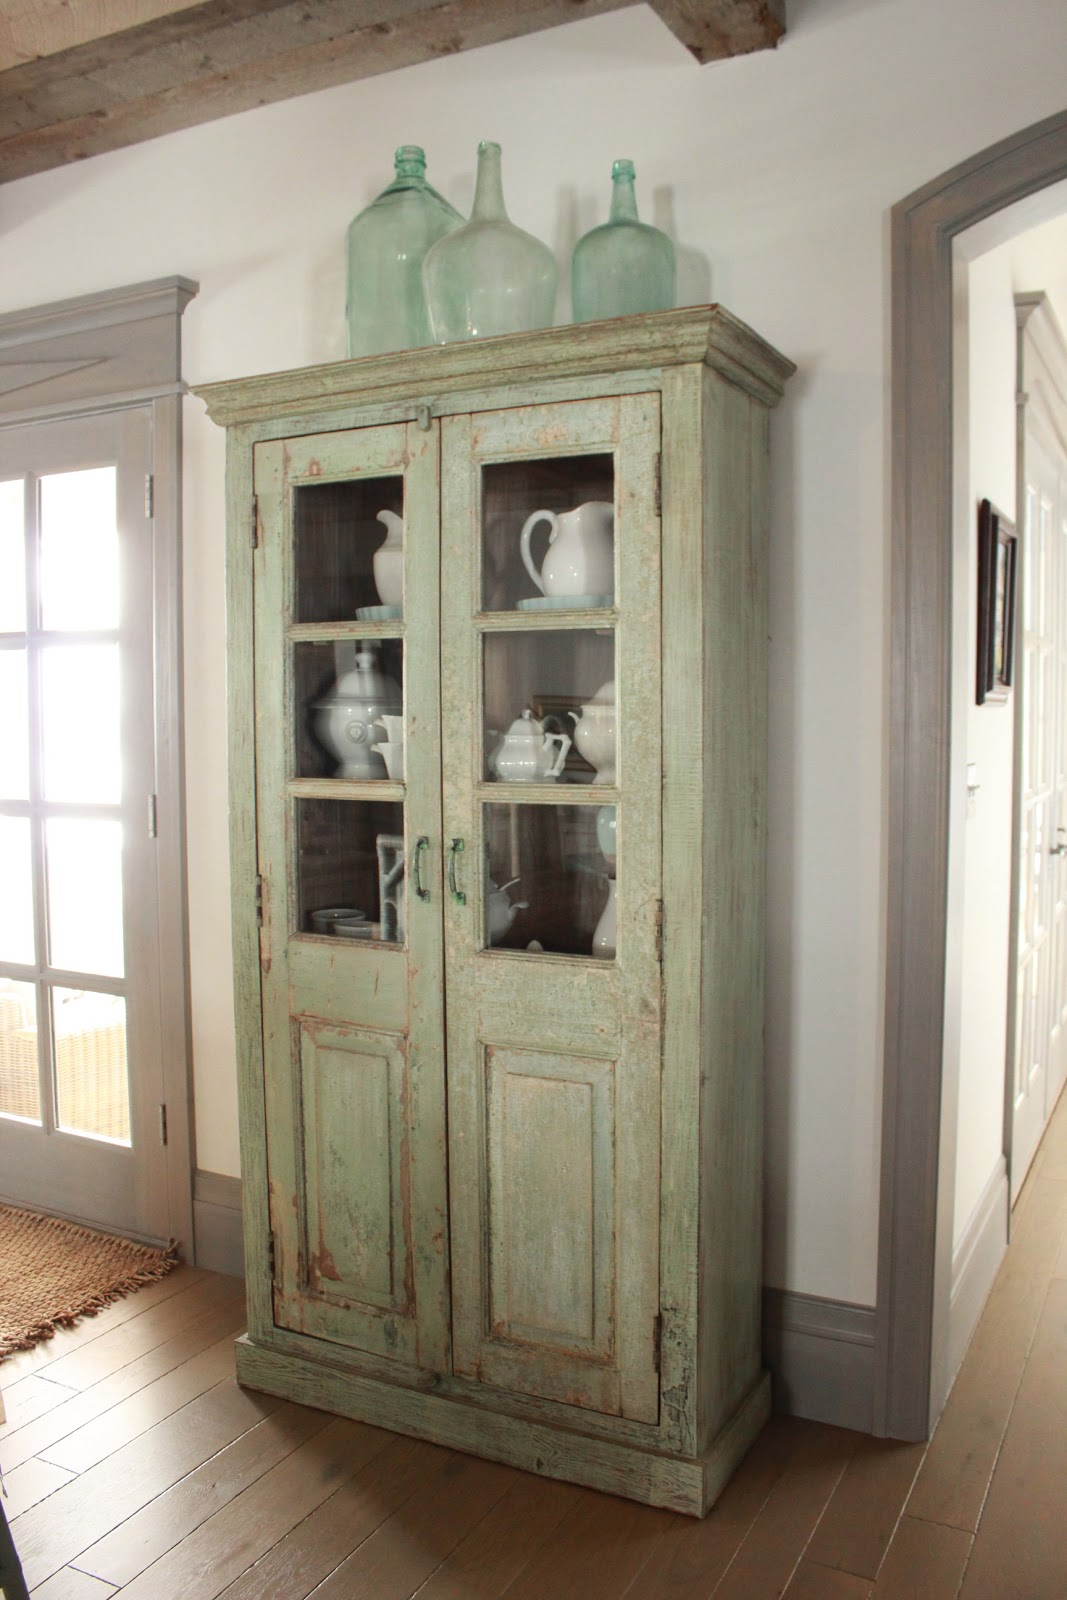 Weathered green country cupboard and green glass bottles in #Frenchfarmhouse with #rusticdecor